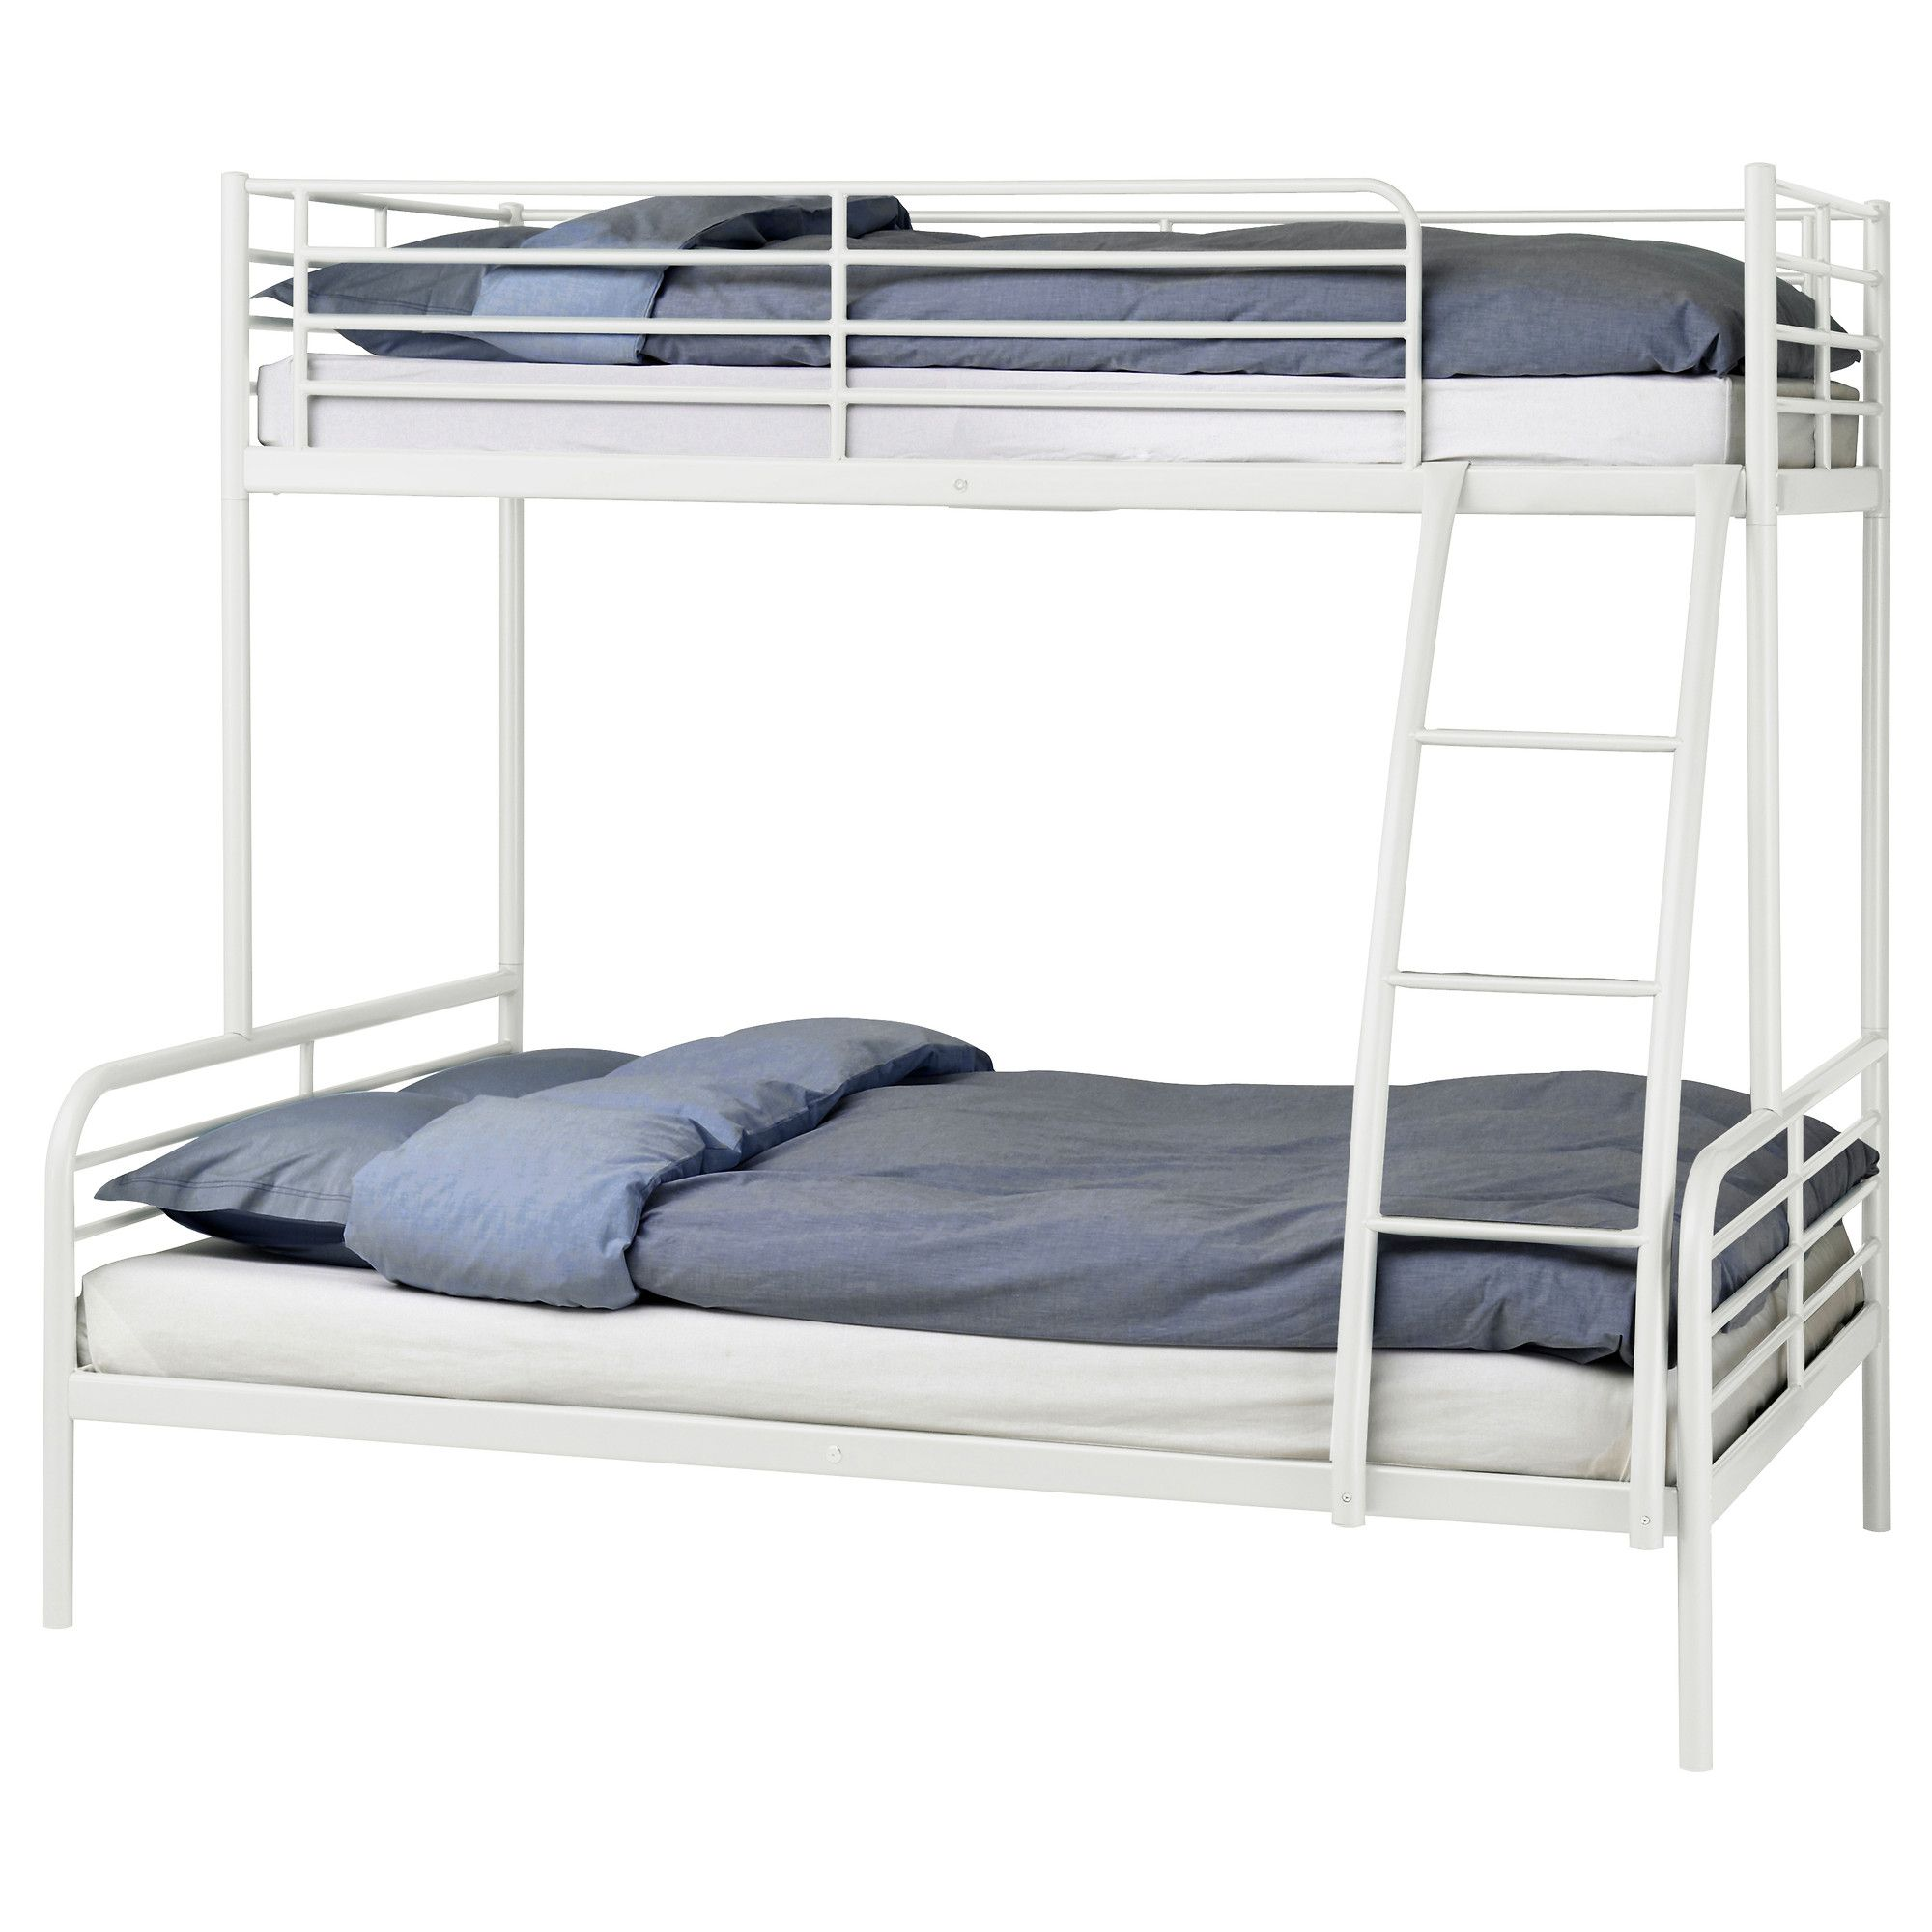 Ikea Us Furniture And Home Furnishings Bunk Beds Cool Bunk Beds Ikea Bunk Bed